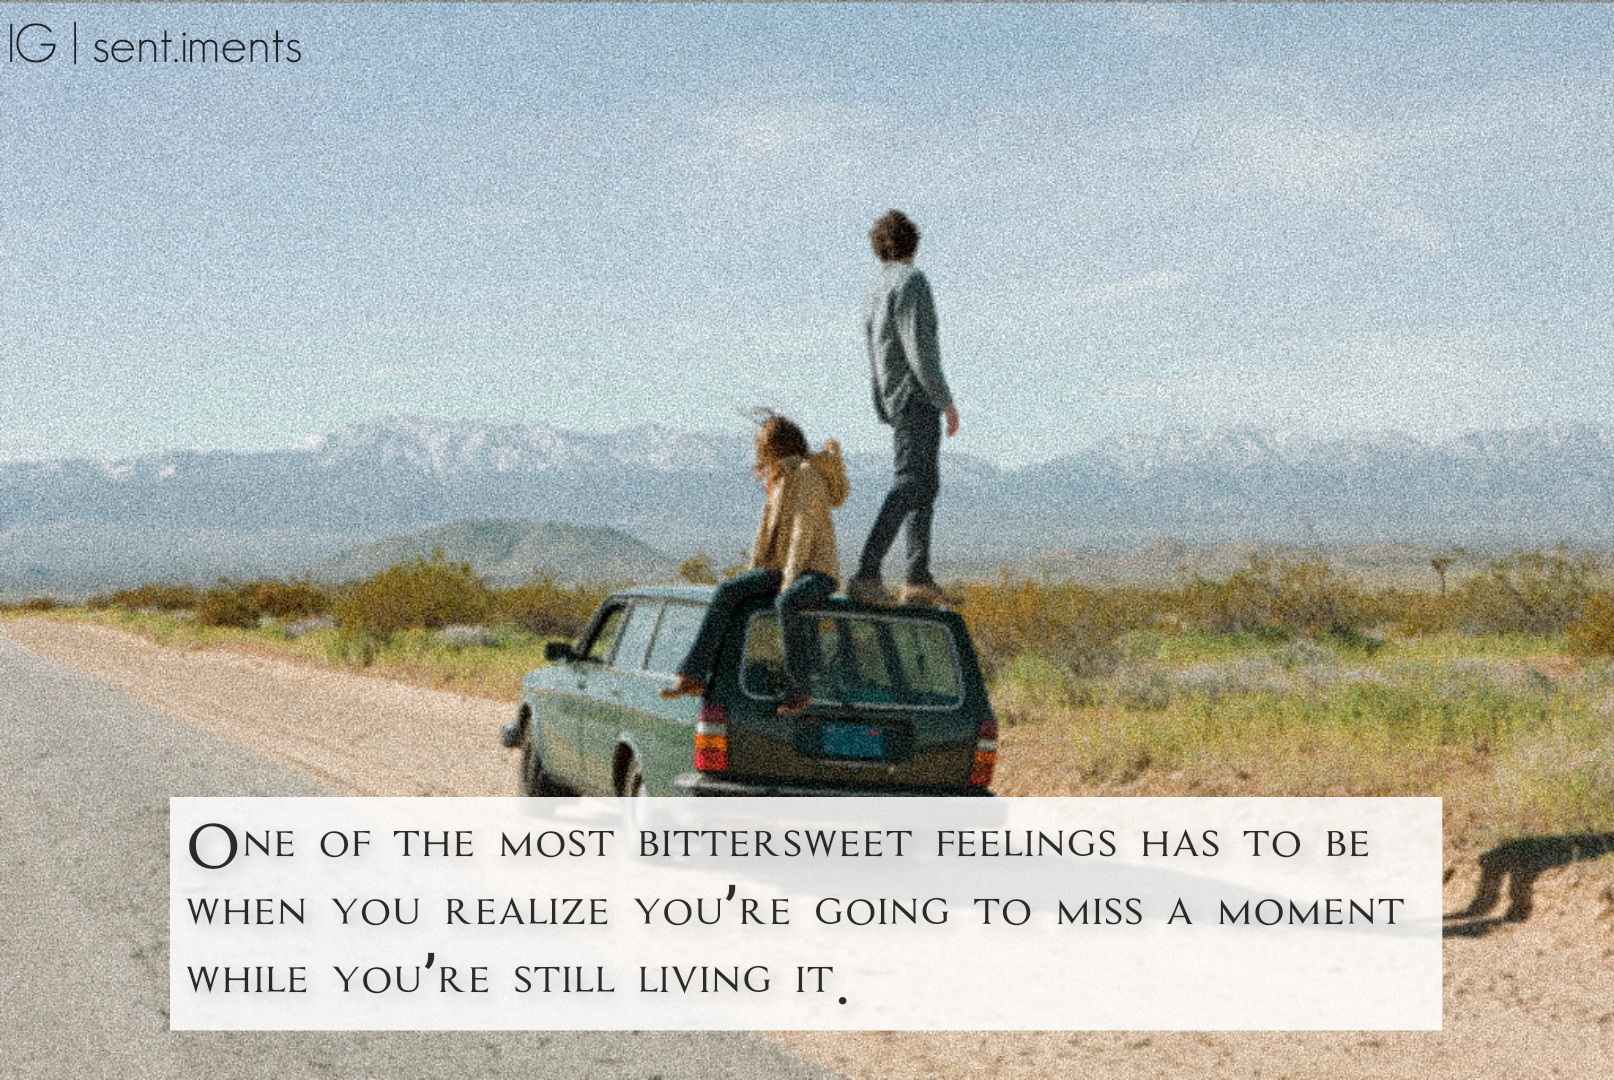 """One of the most bittersweet feelings has to be when you realize you're going to miss a moment while you're still living it."" by Alyssa N [1614 X 1080]"